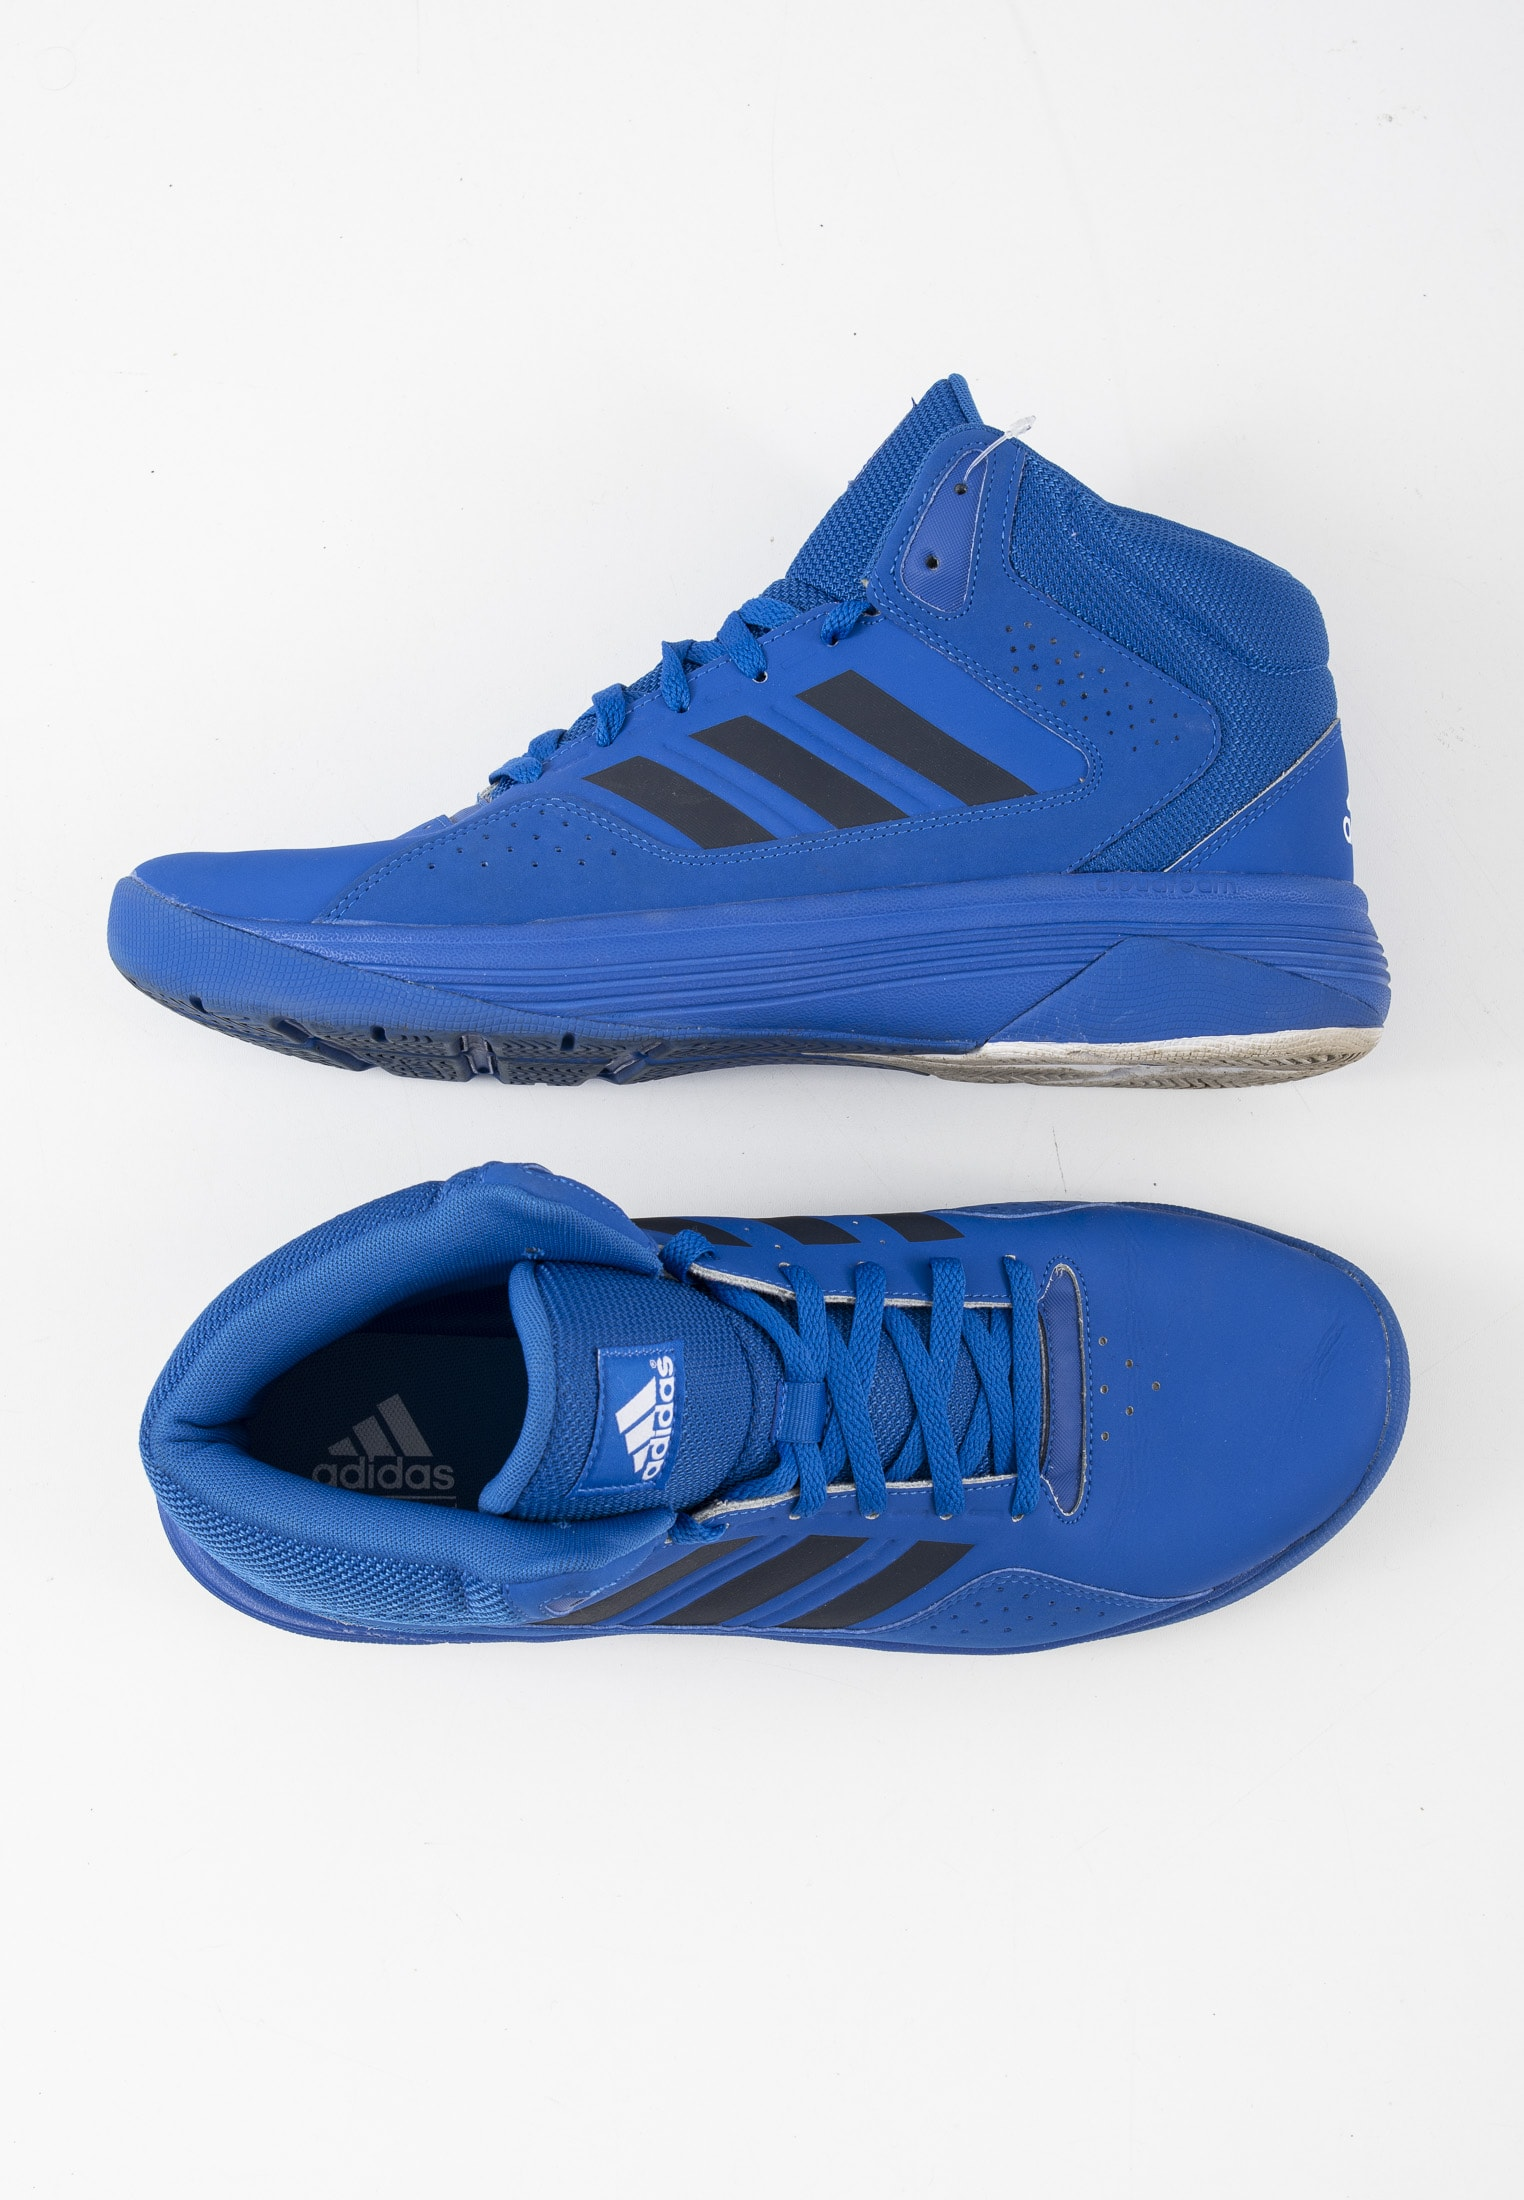 adidas Originals Sneakers Blau Gr.46.5